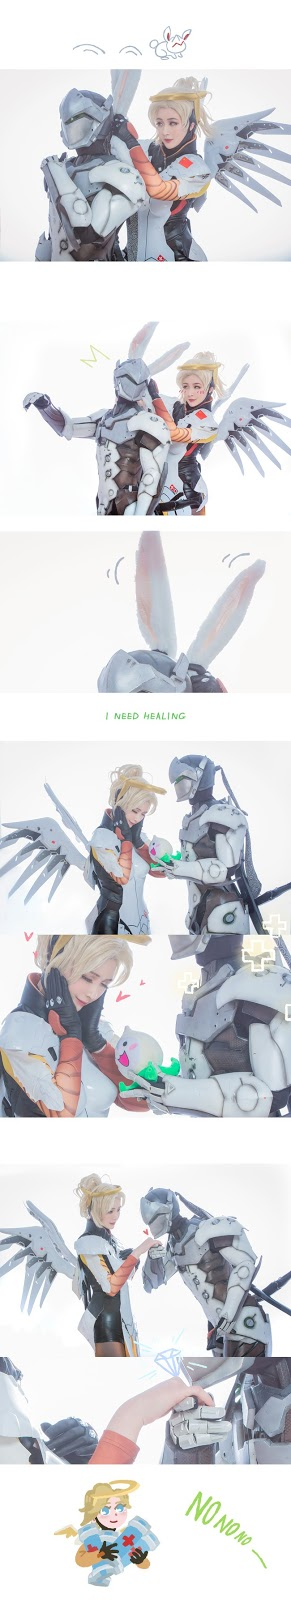 "Cosplay ""Love"" Between Genji And Mercy In The Overwatch"